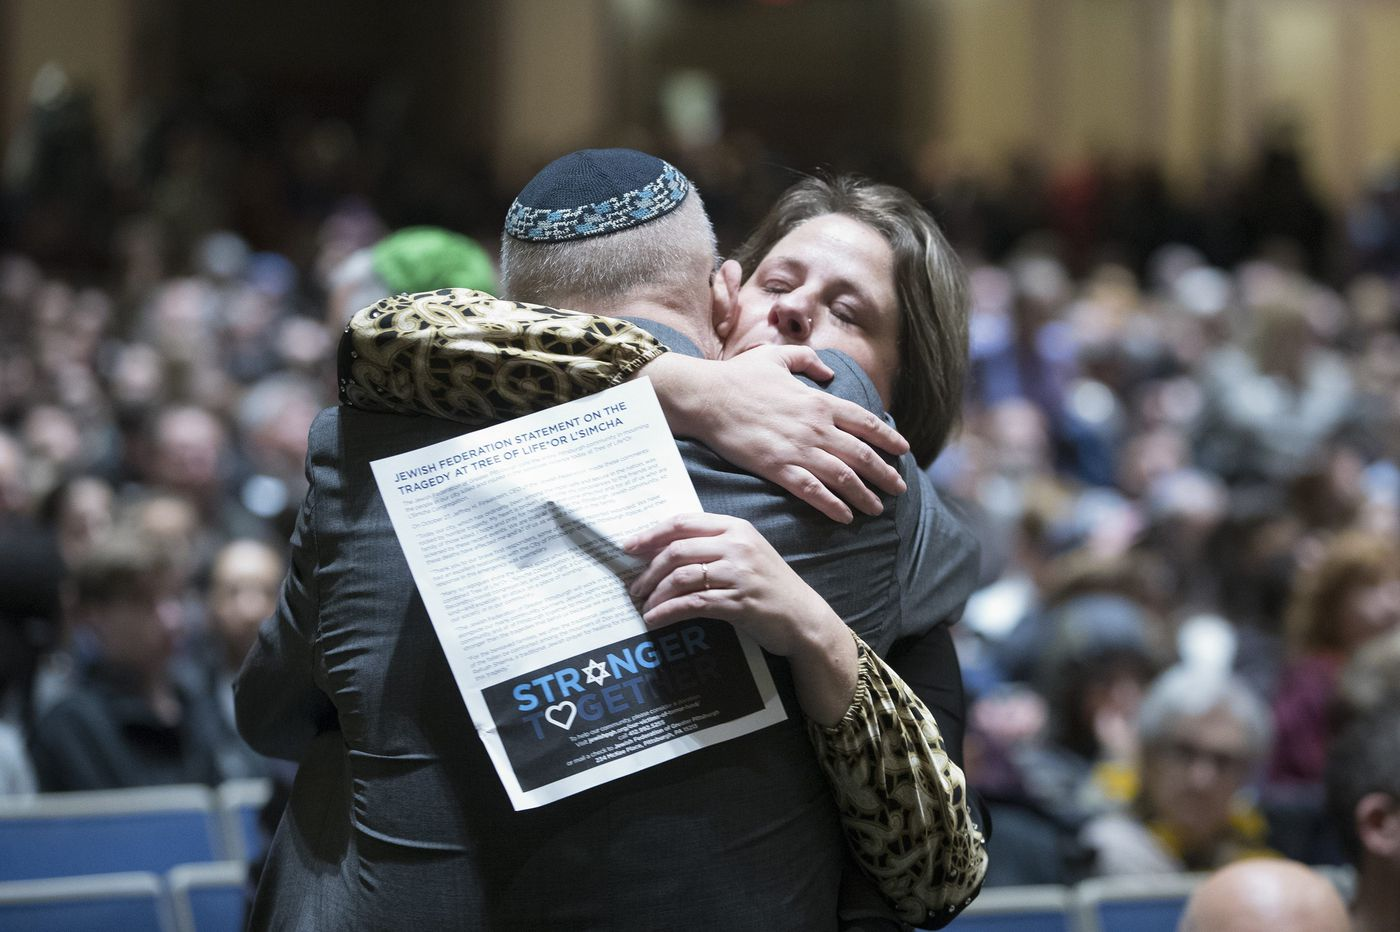 Pittsburgh shooter's mistake: There is no us and no them. We are one. | Opinion